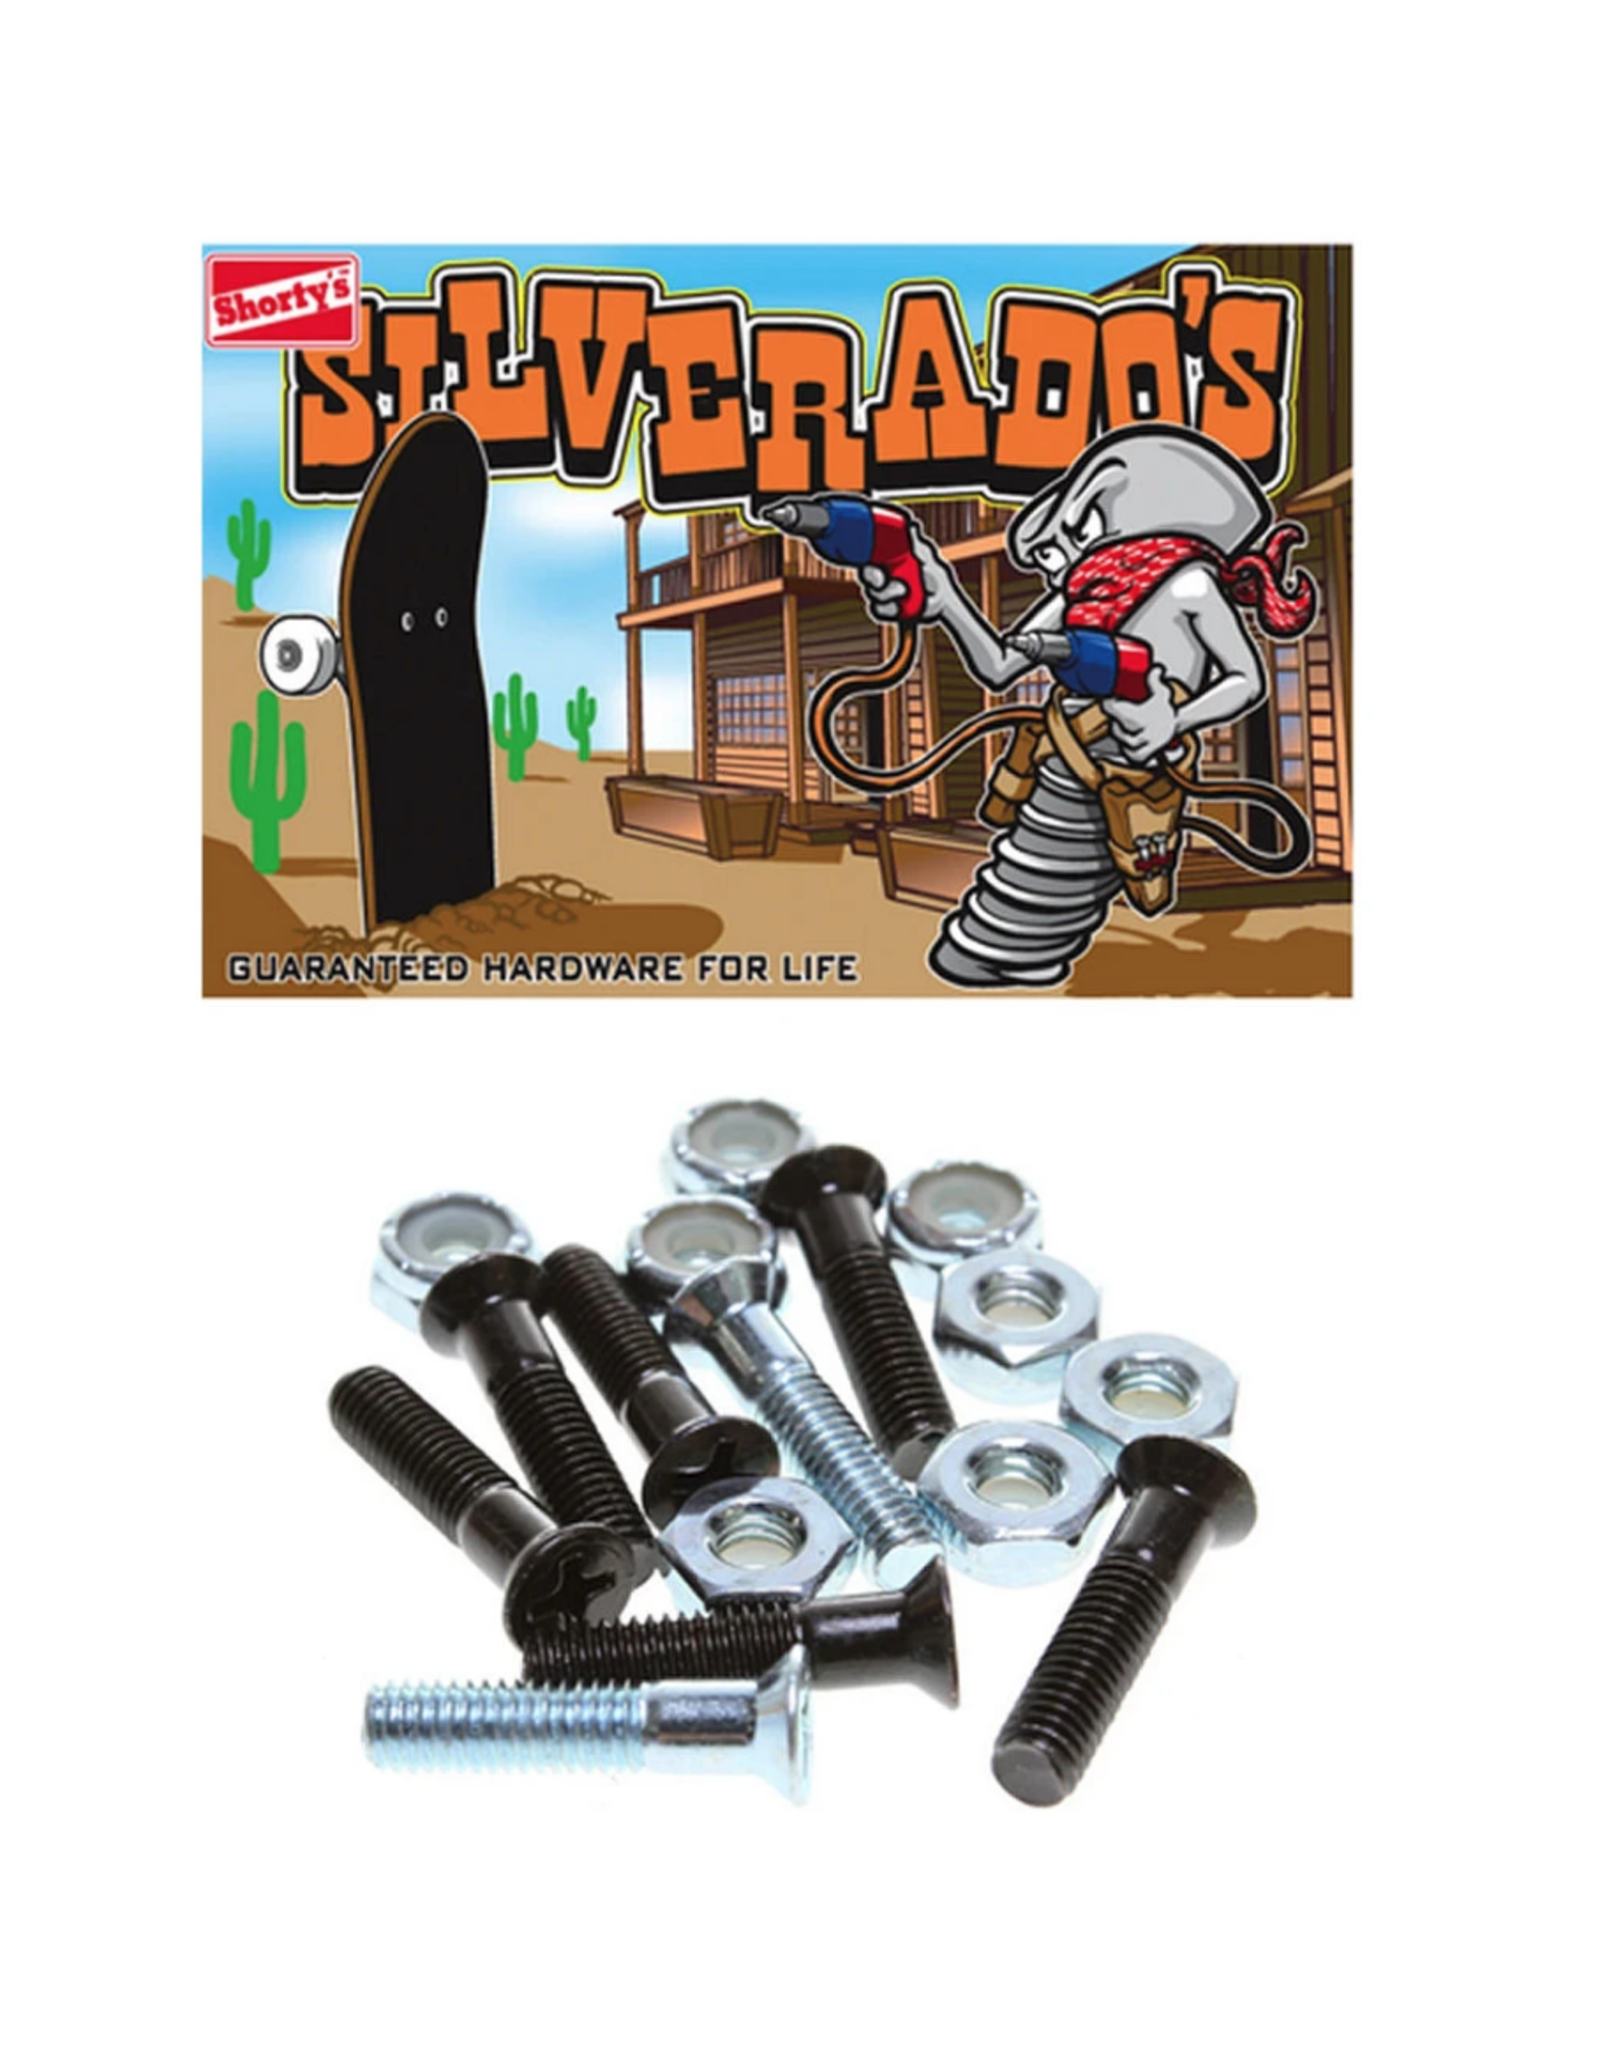 Shorty's Silverados Phillips 1""